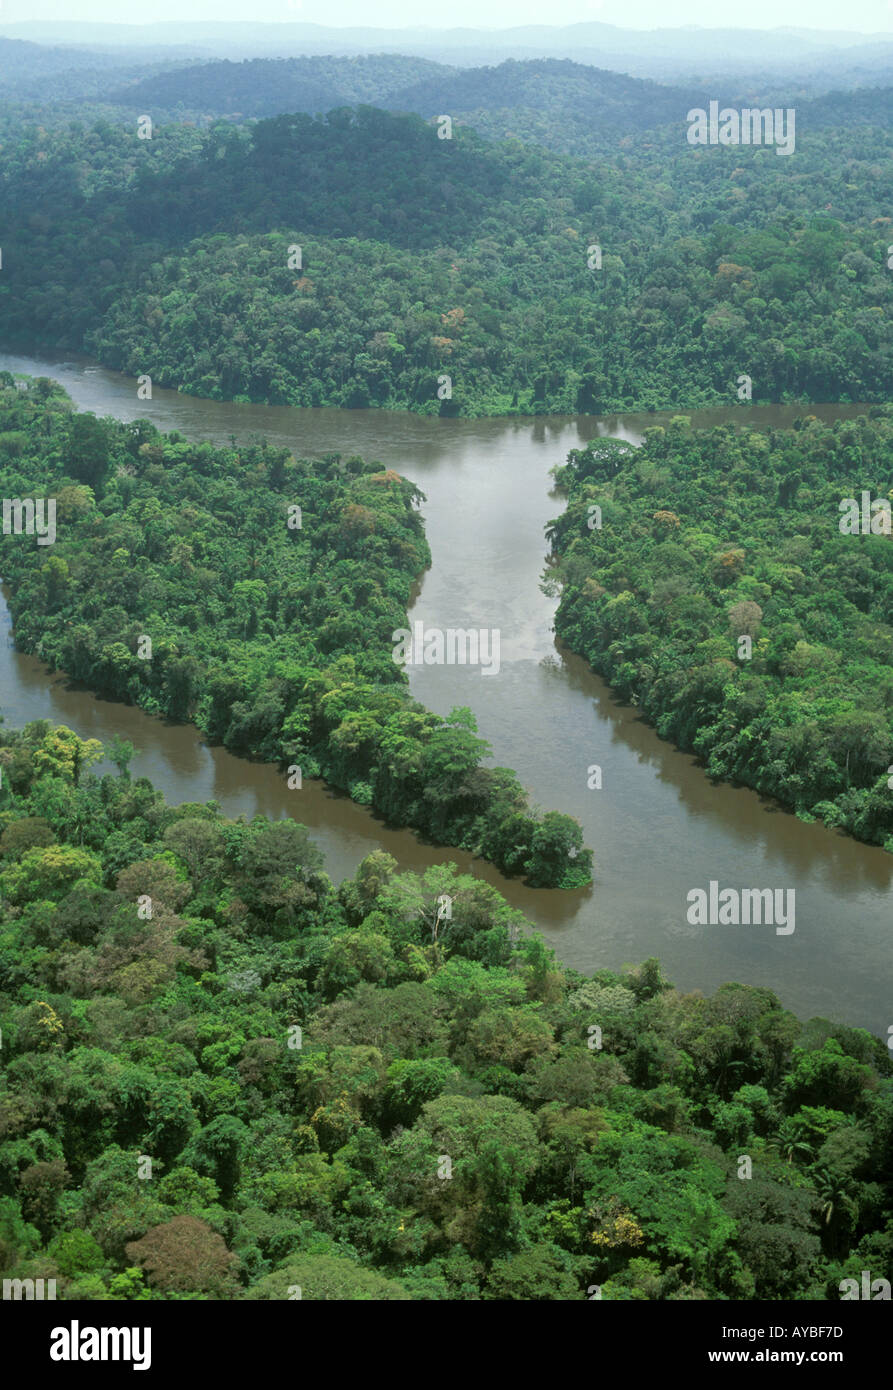 Aerial view of Jari River coming down from Guyana Highlands and lush rainforest in the Amazon region Brazil Para-Amapa - Stock Image